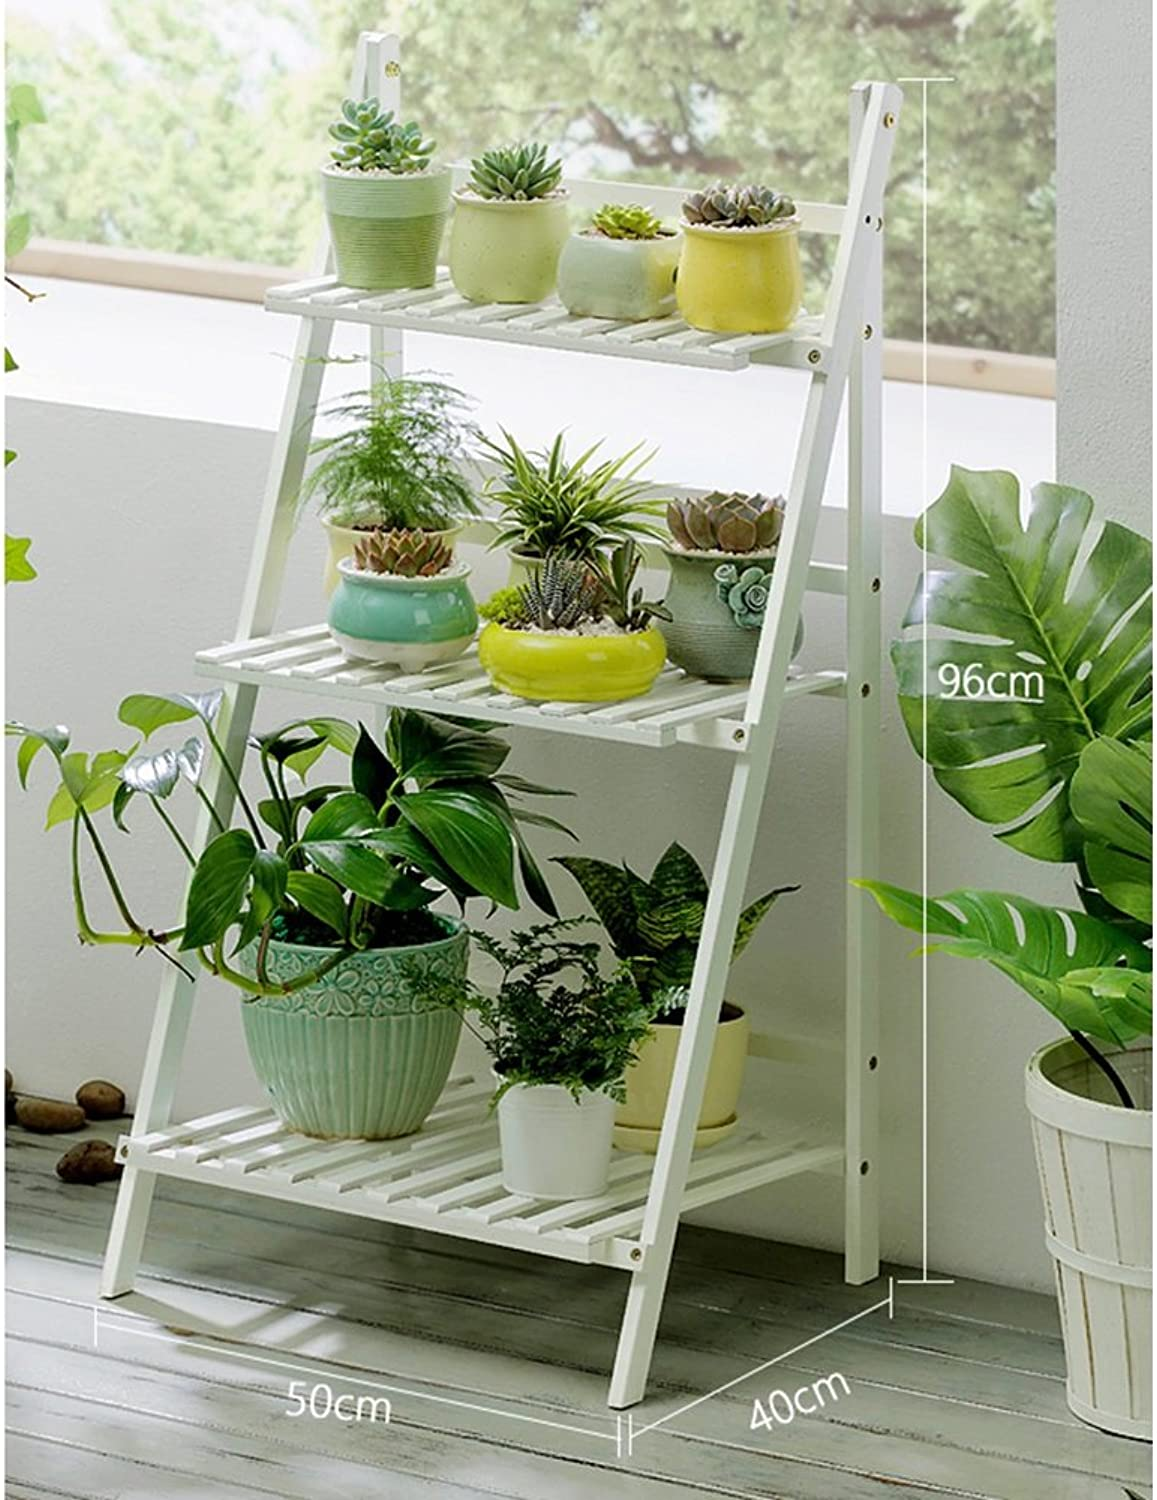 8fdb1e428a54 NYDZDM 3-Tier Flower Stand Wooden Potted Plant Display Ladder Planter Shelf  Floor-Standing Herb Pot Rack Foldable Multilayer White 50 100×40×96cm ...